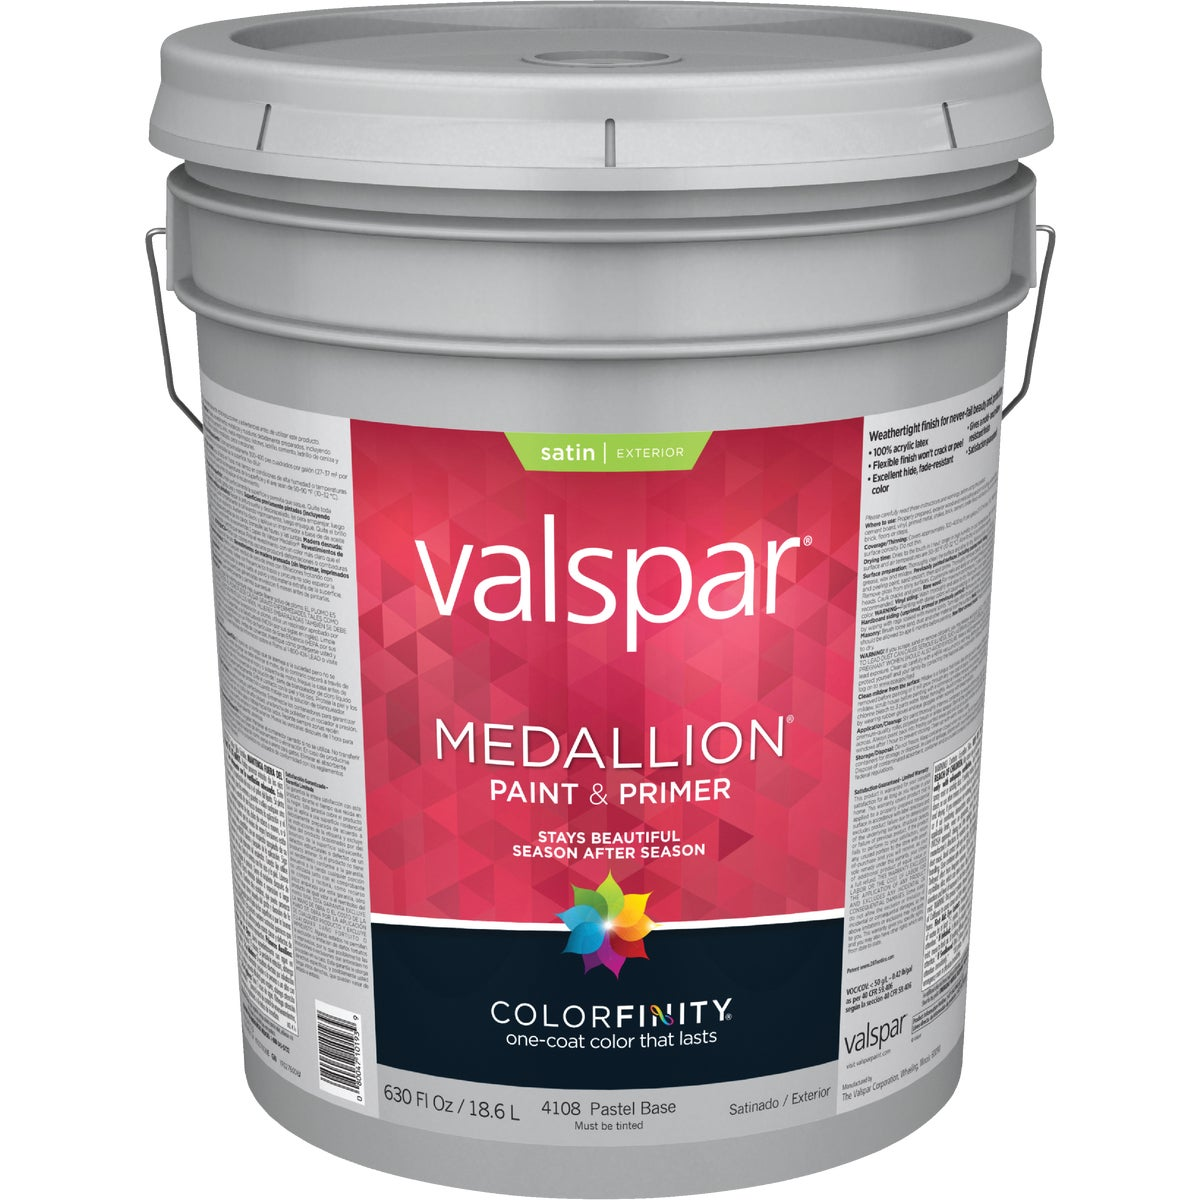 EXT SAT PASTEL BS PAINT - 027.0004108.008 by Valspar Corp